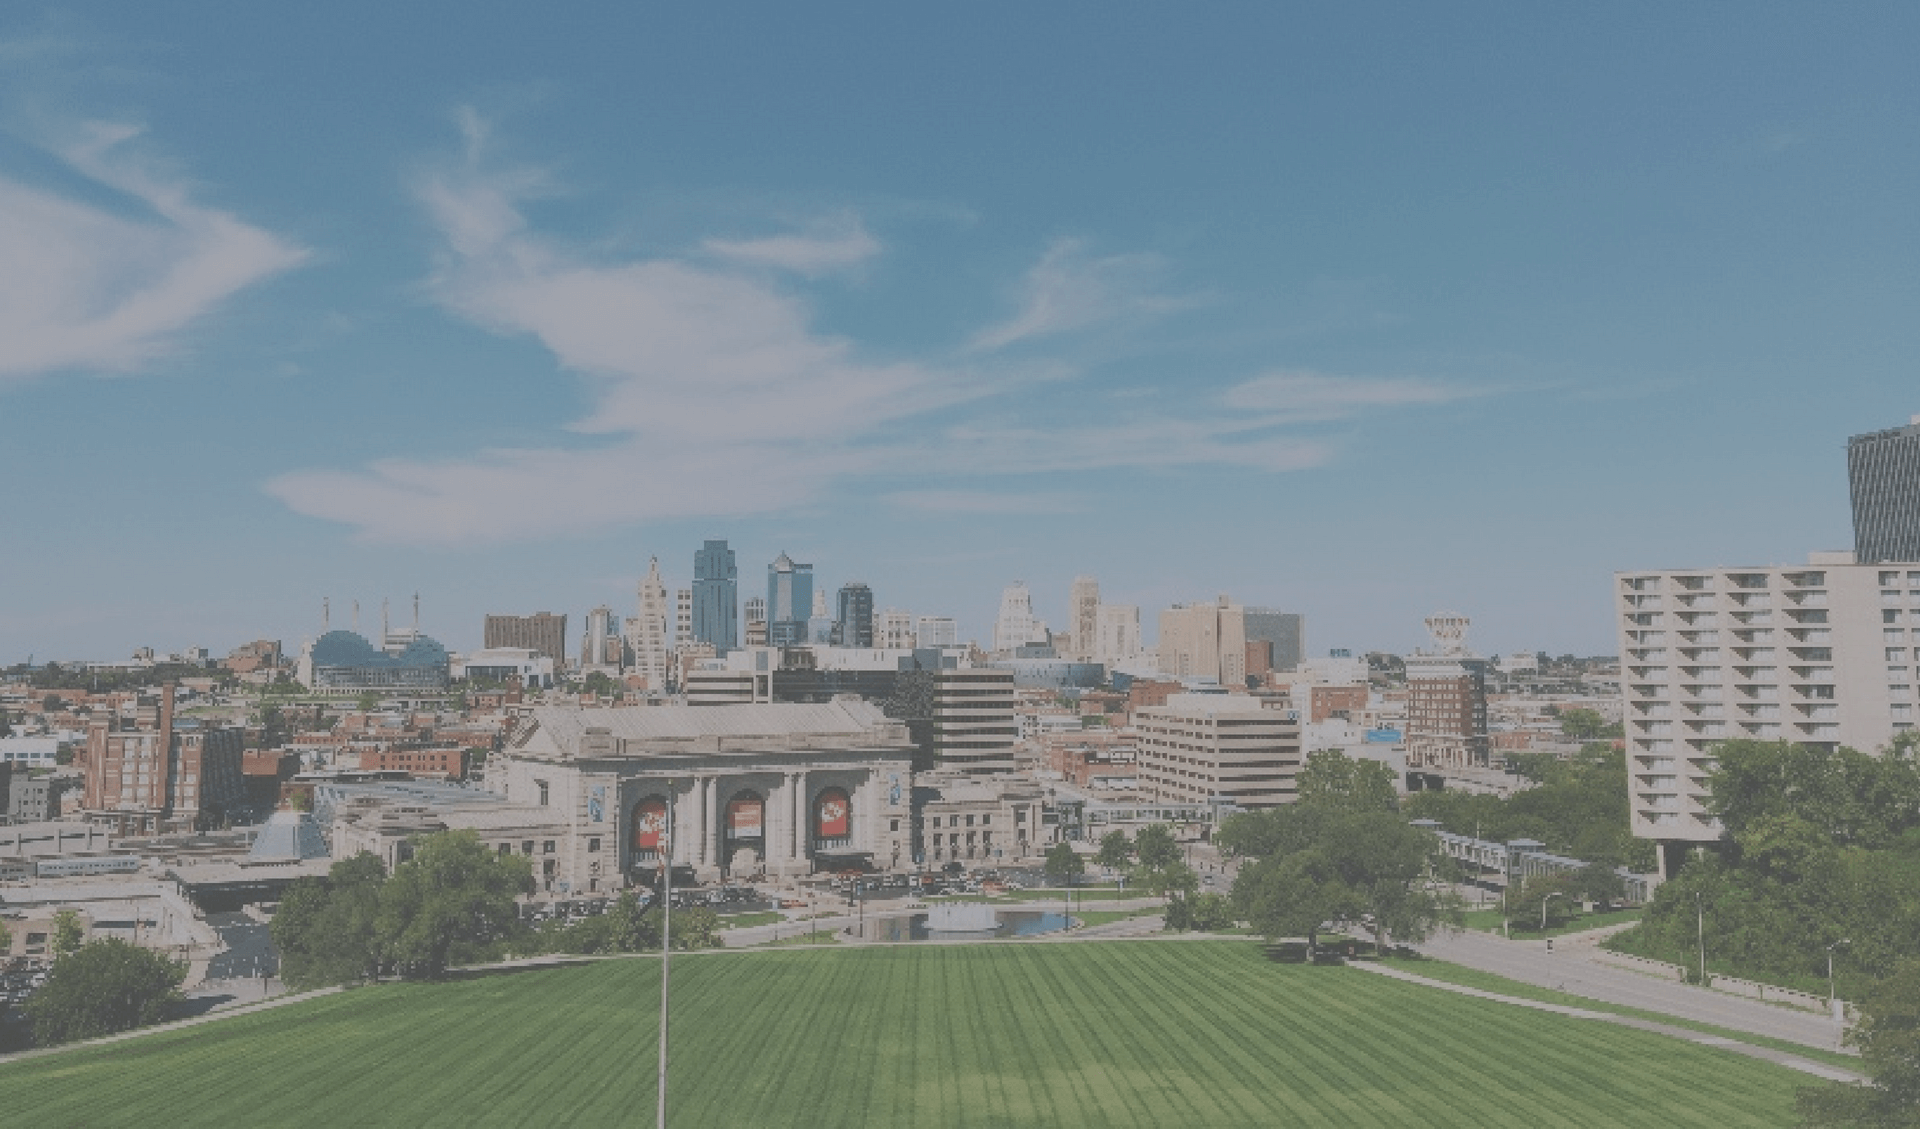 Outside of Fetch: A Short Guide to Kansas City